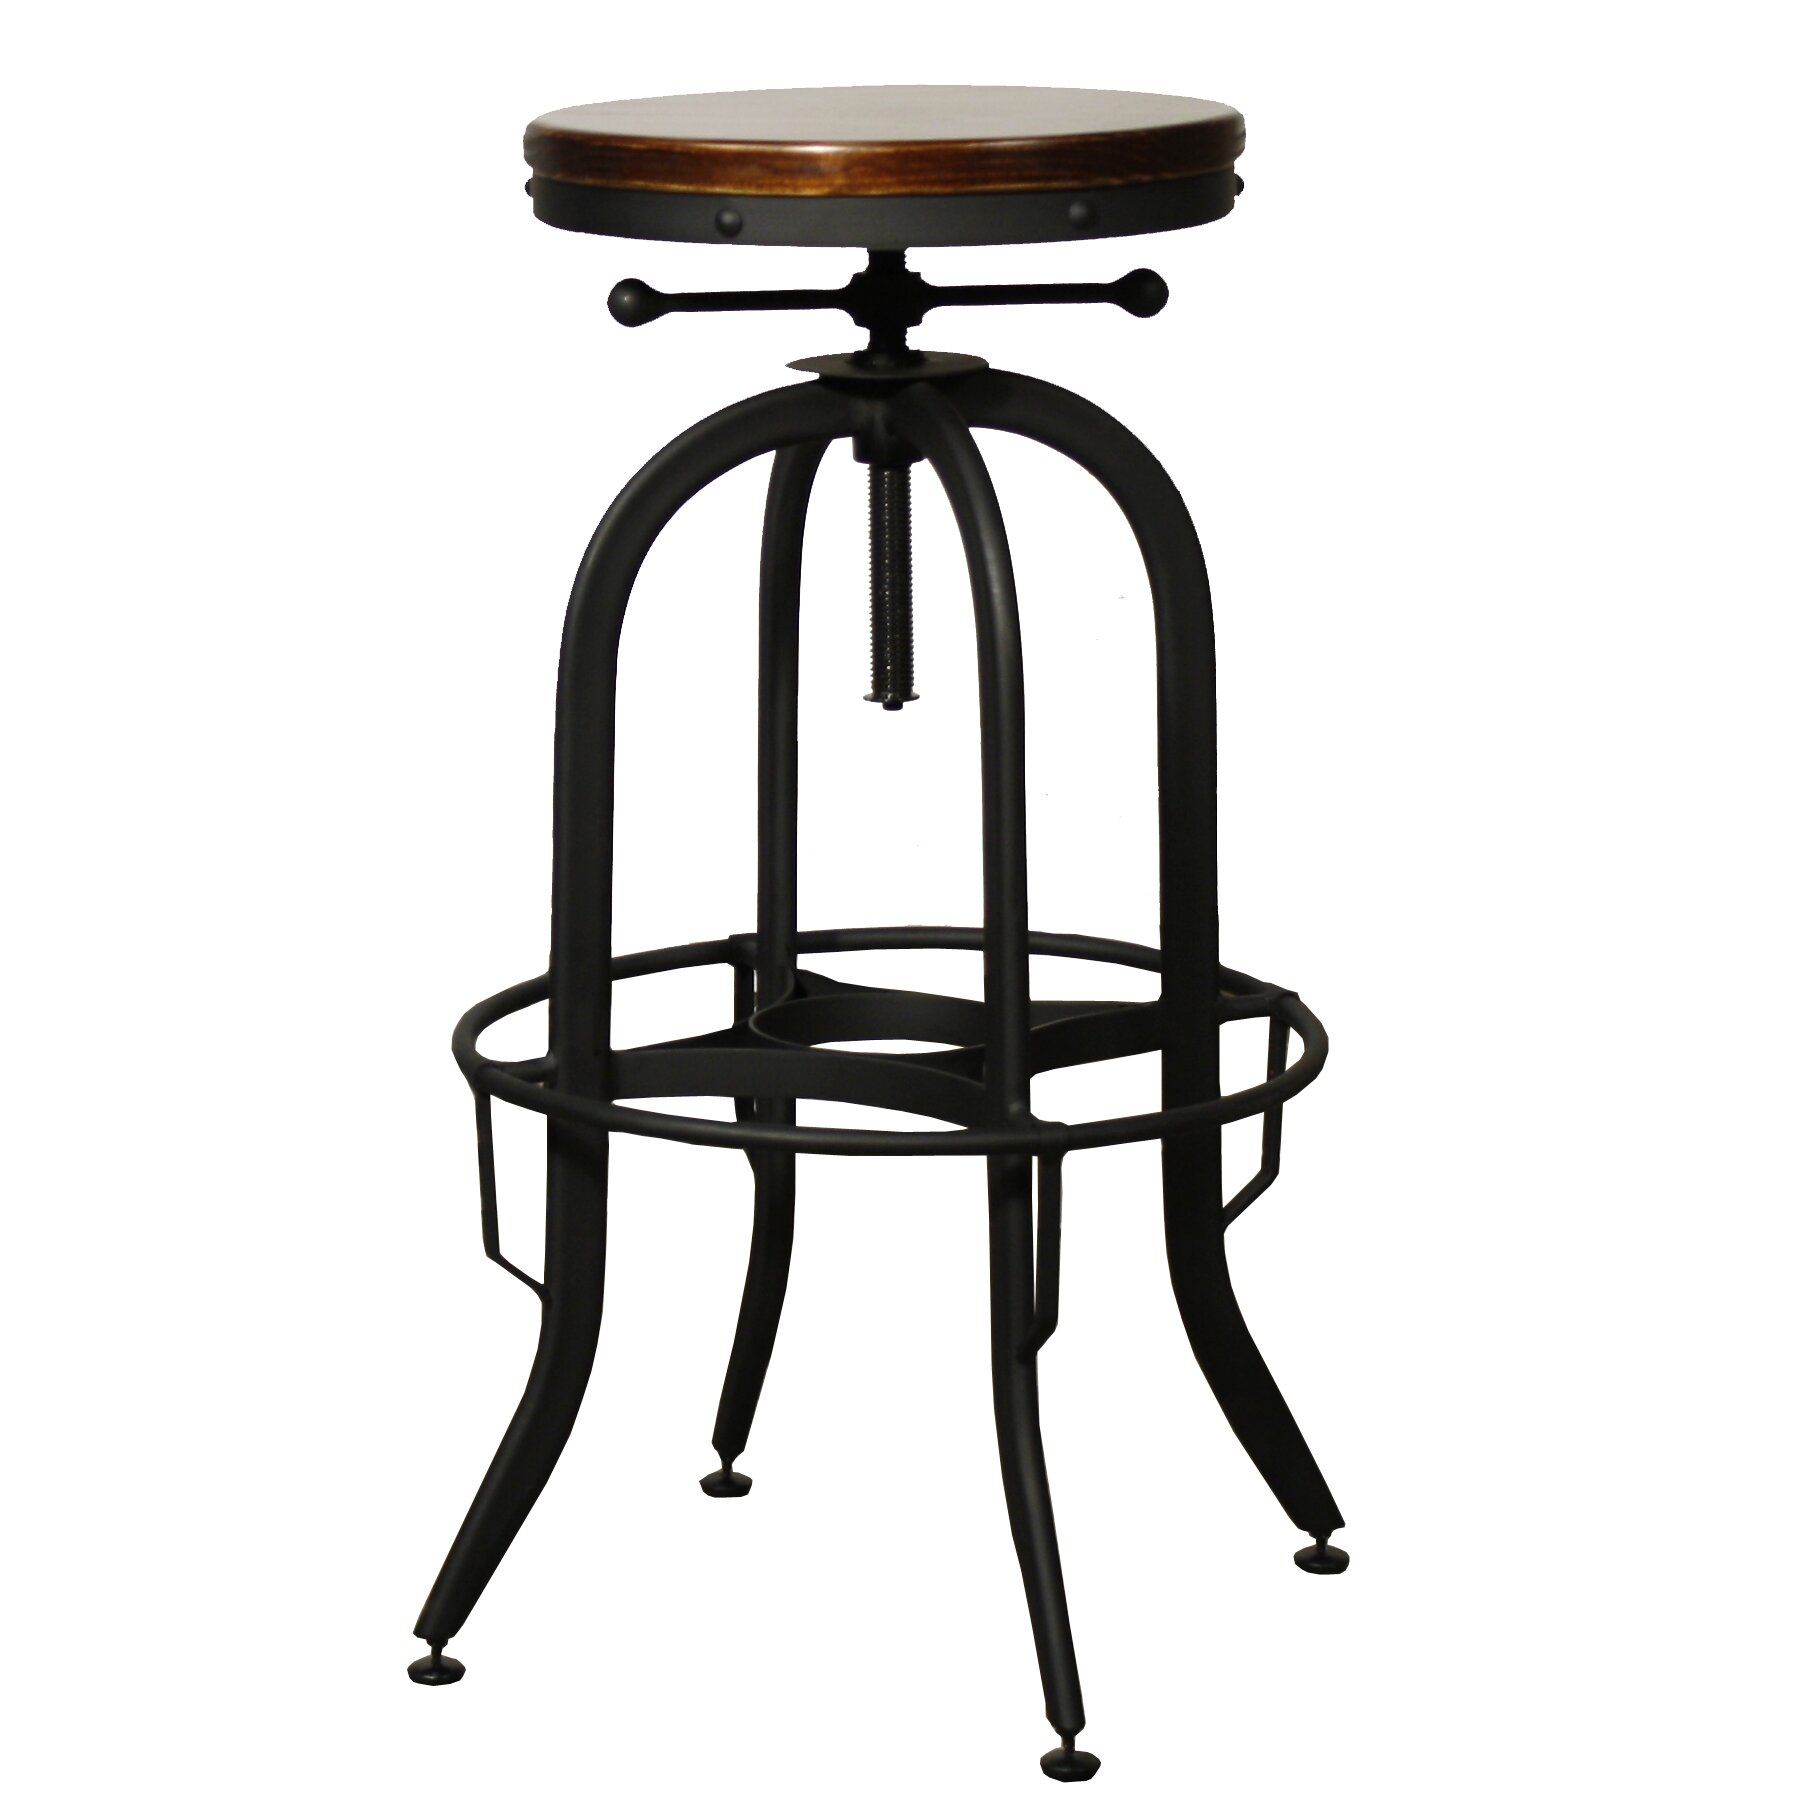 New Pacific Direct Industrial Adjustable Height Swivel Bar  : IndustrialAdjustableHeightSwivelBarStool from www.wayfair.com size 1806 x 1806 jpeg 115kB